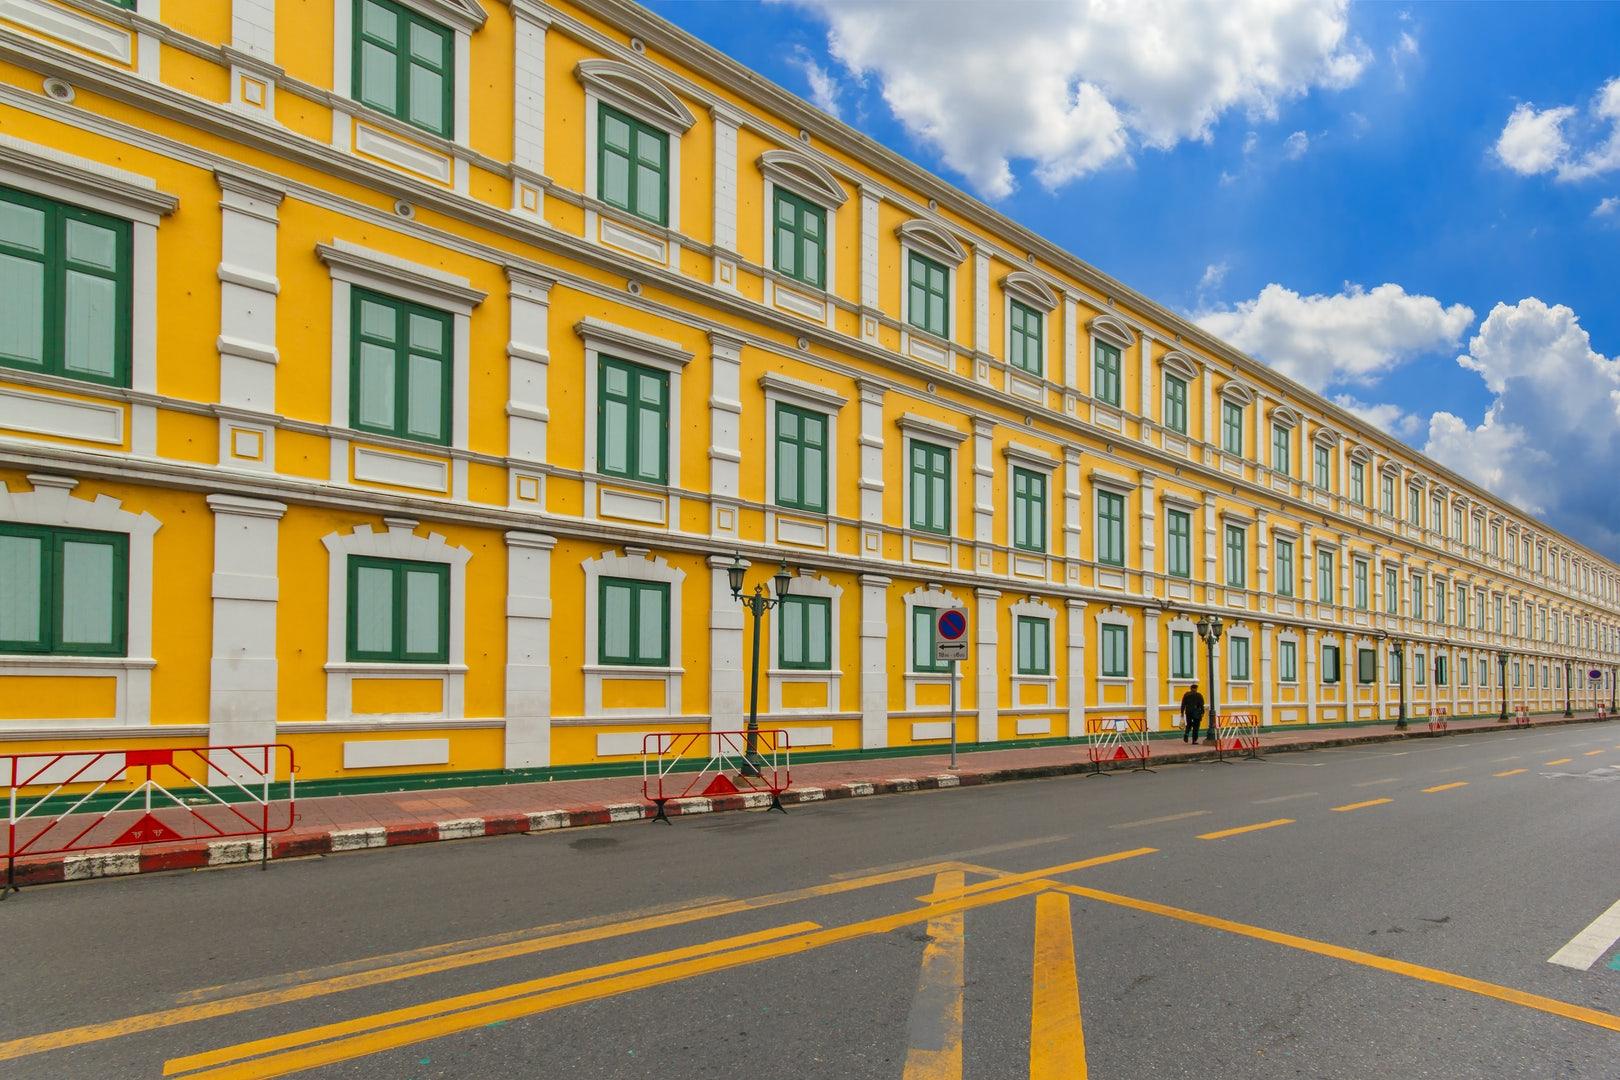 yellow building Ministry of Defence